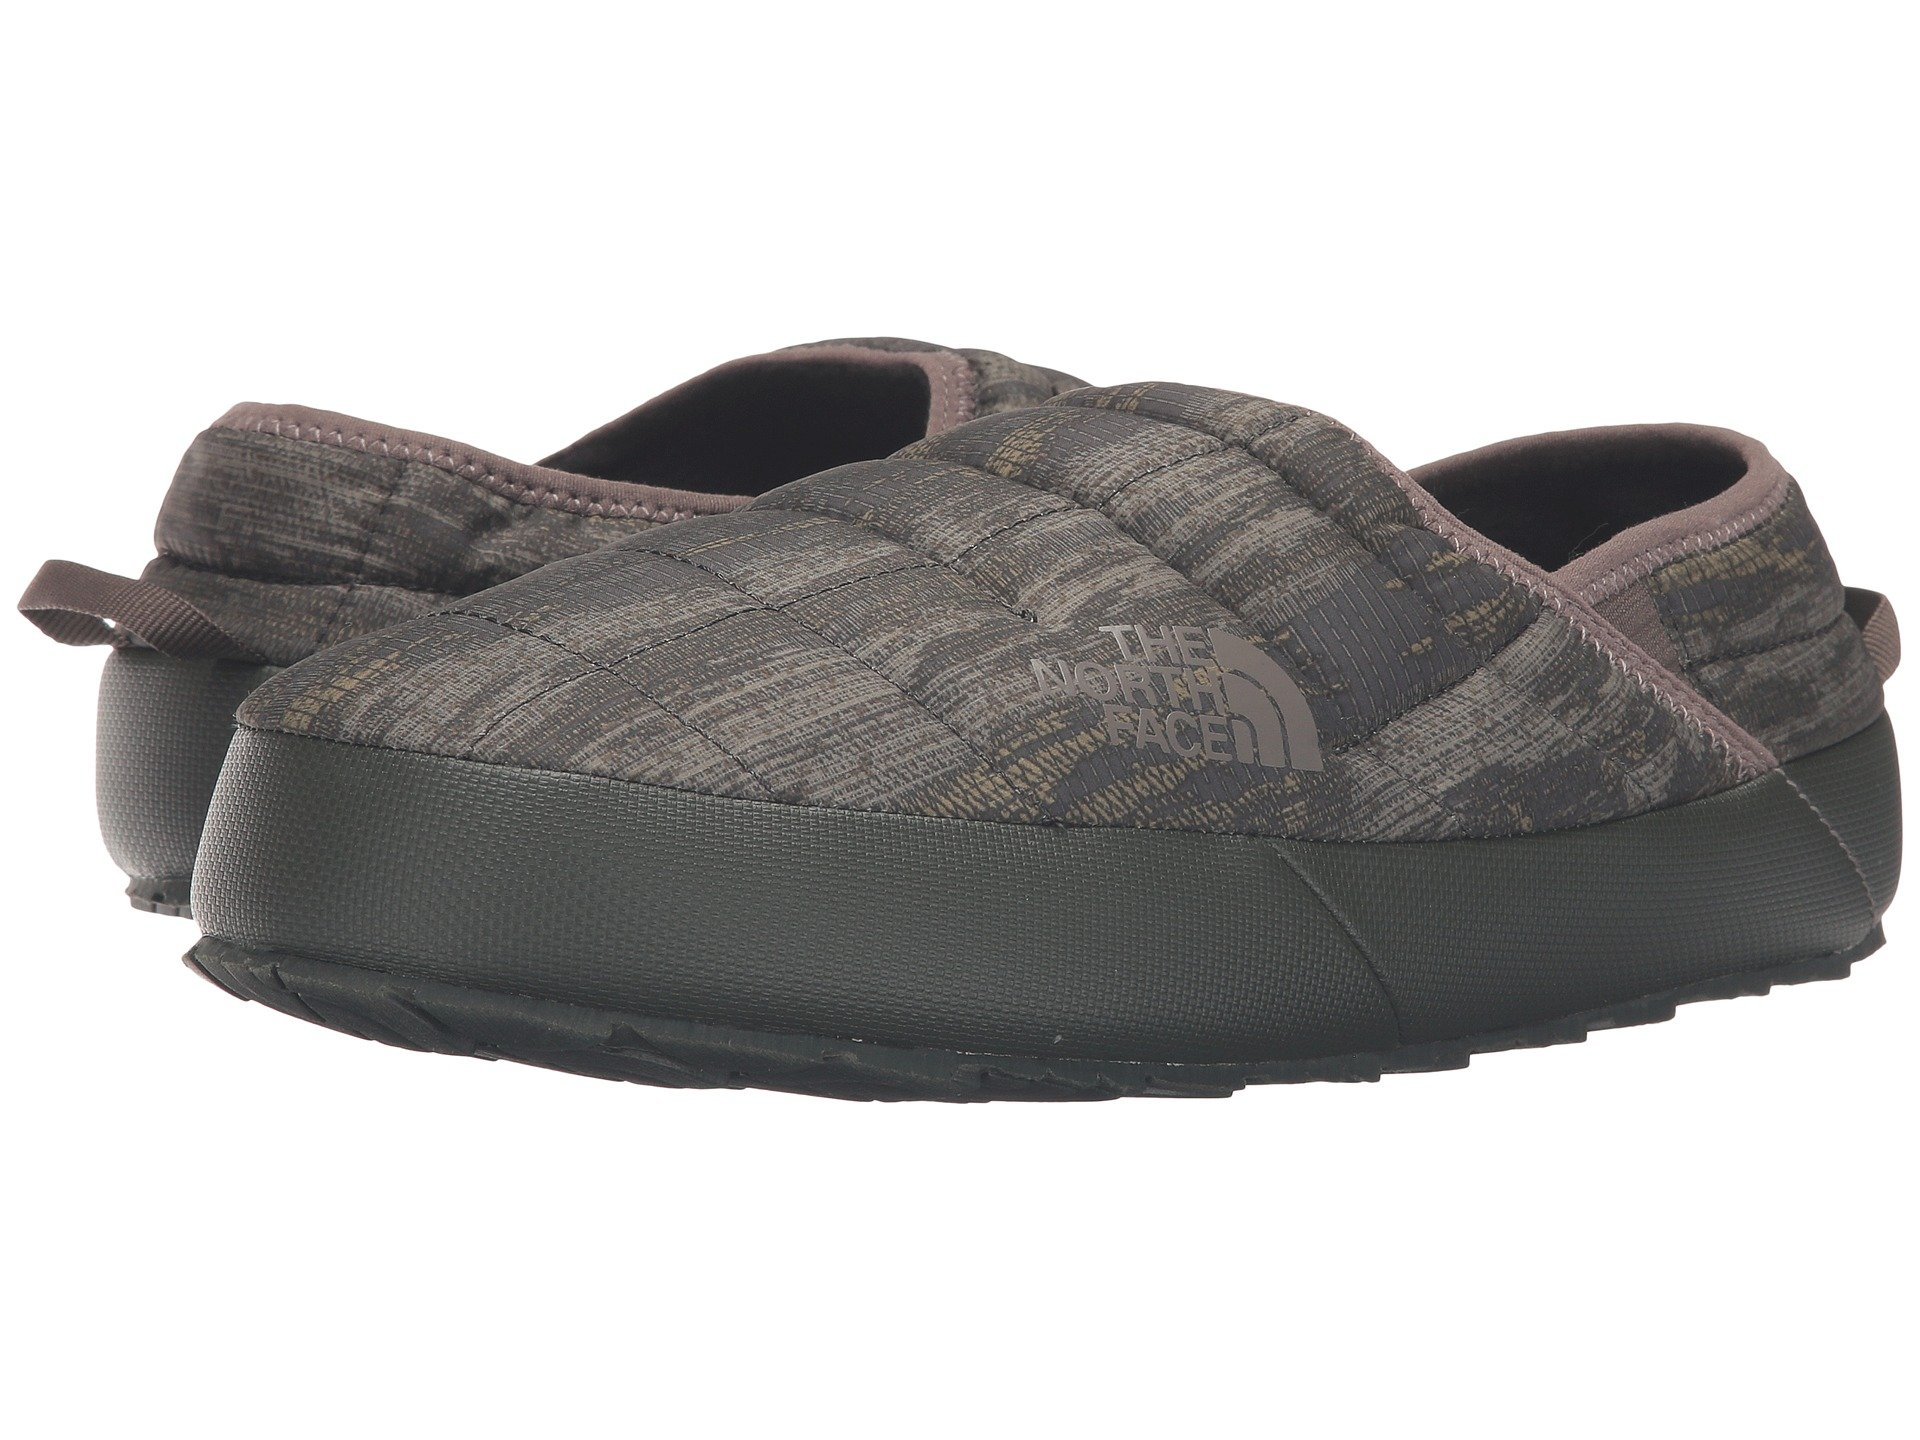 Calzado Sin Talon para Hombre The North Face ThermoBall Traction Mule II  + The North Face en VeoyCompro.net